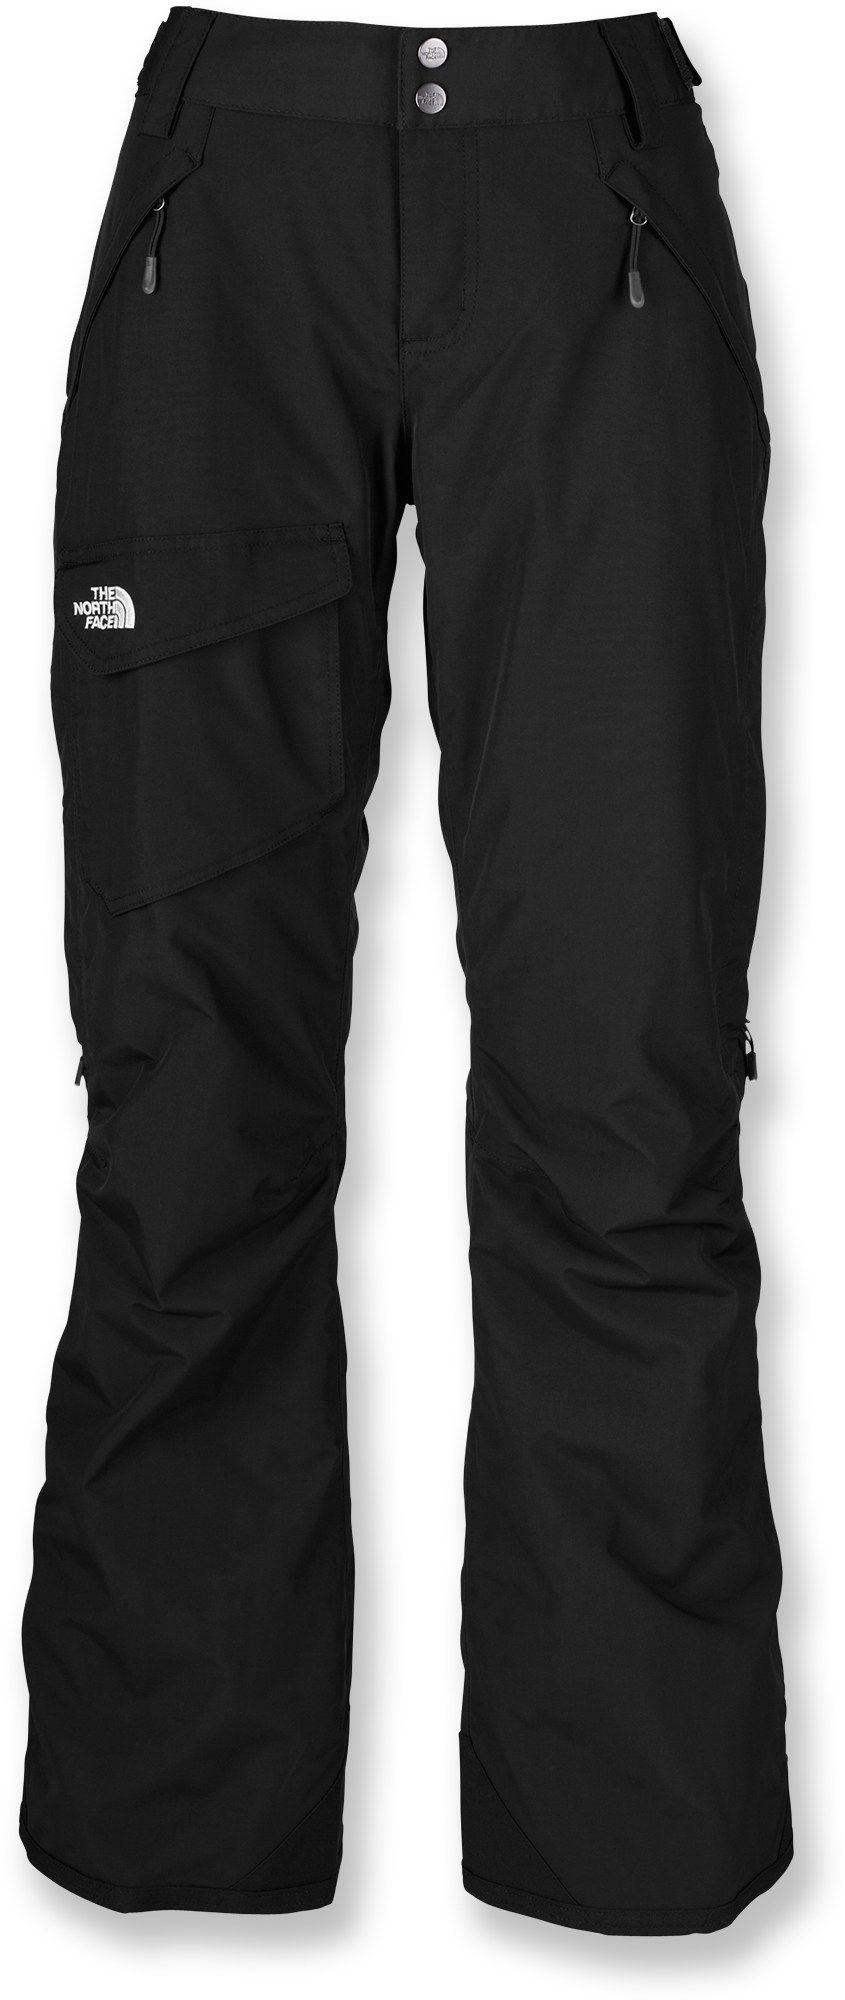 6e02c3bb51 The North Face Freedom LRBC Insulated Pants - Women s